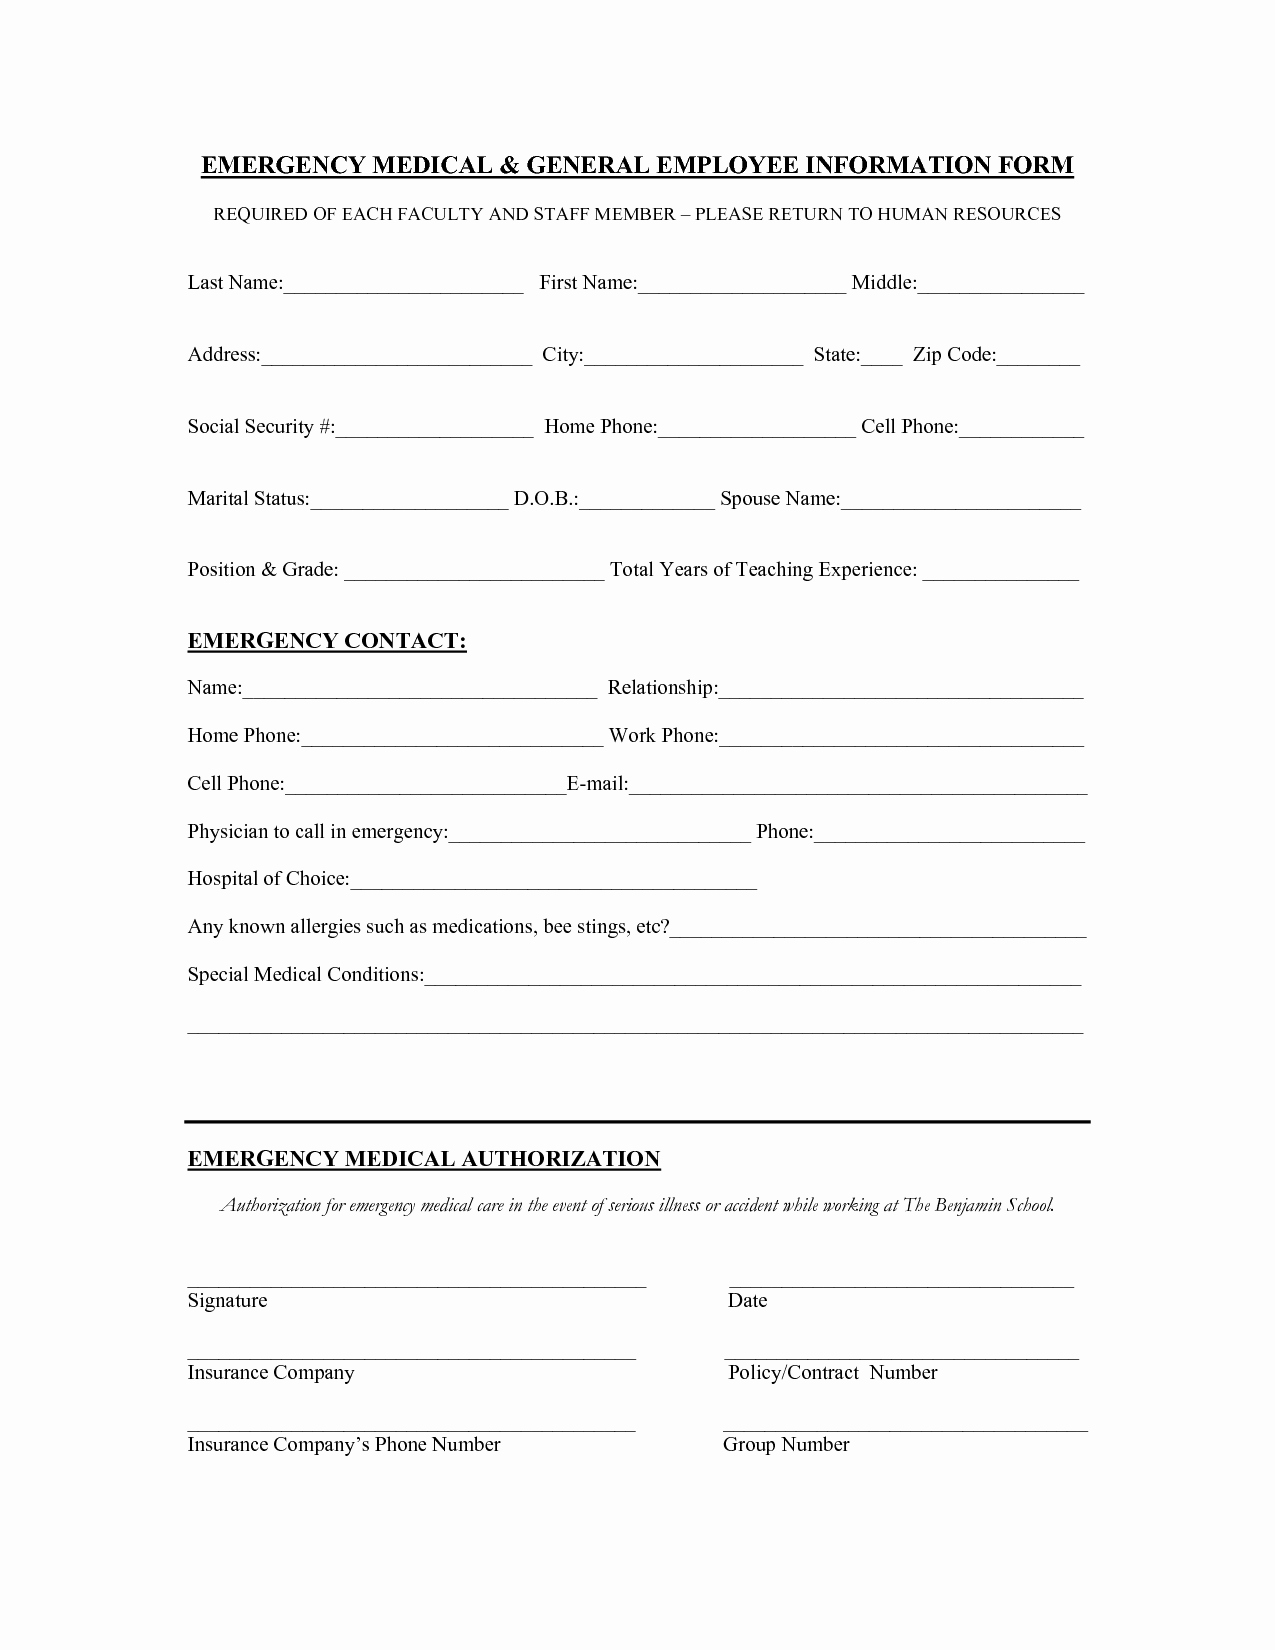 Contact Information form Template Word Luxury Employee Contact Information Template Staruptalent